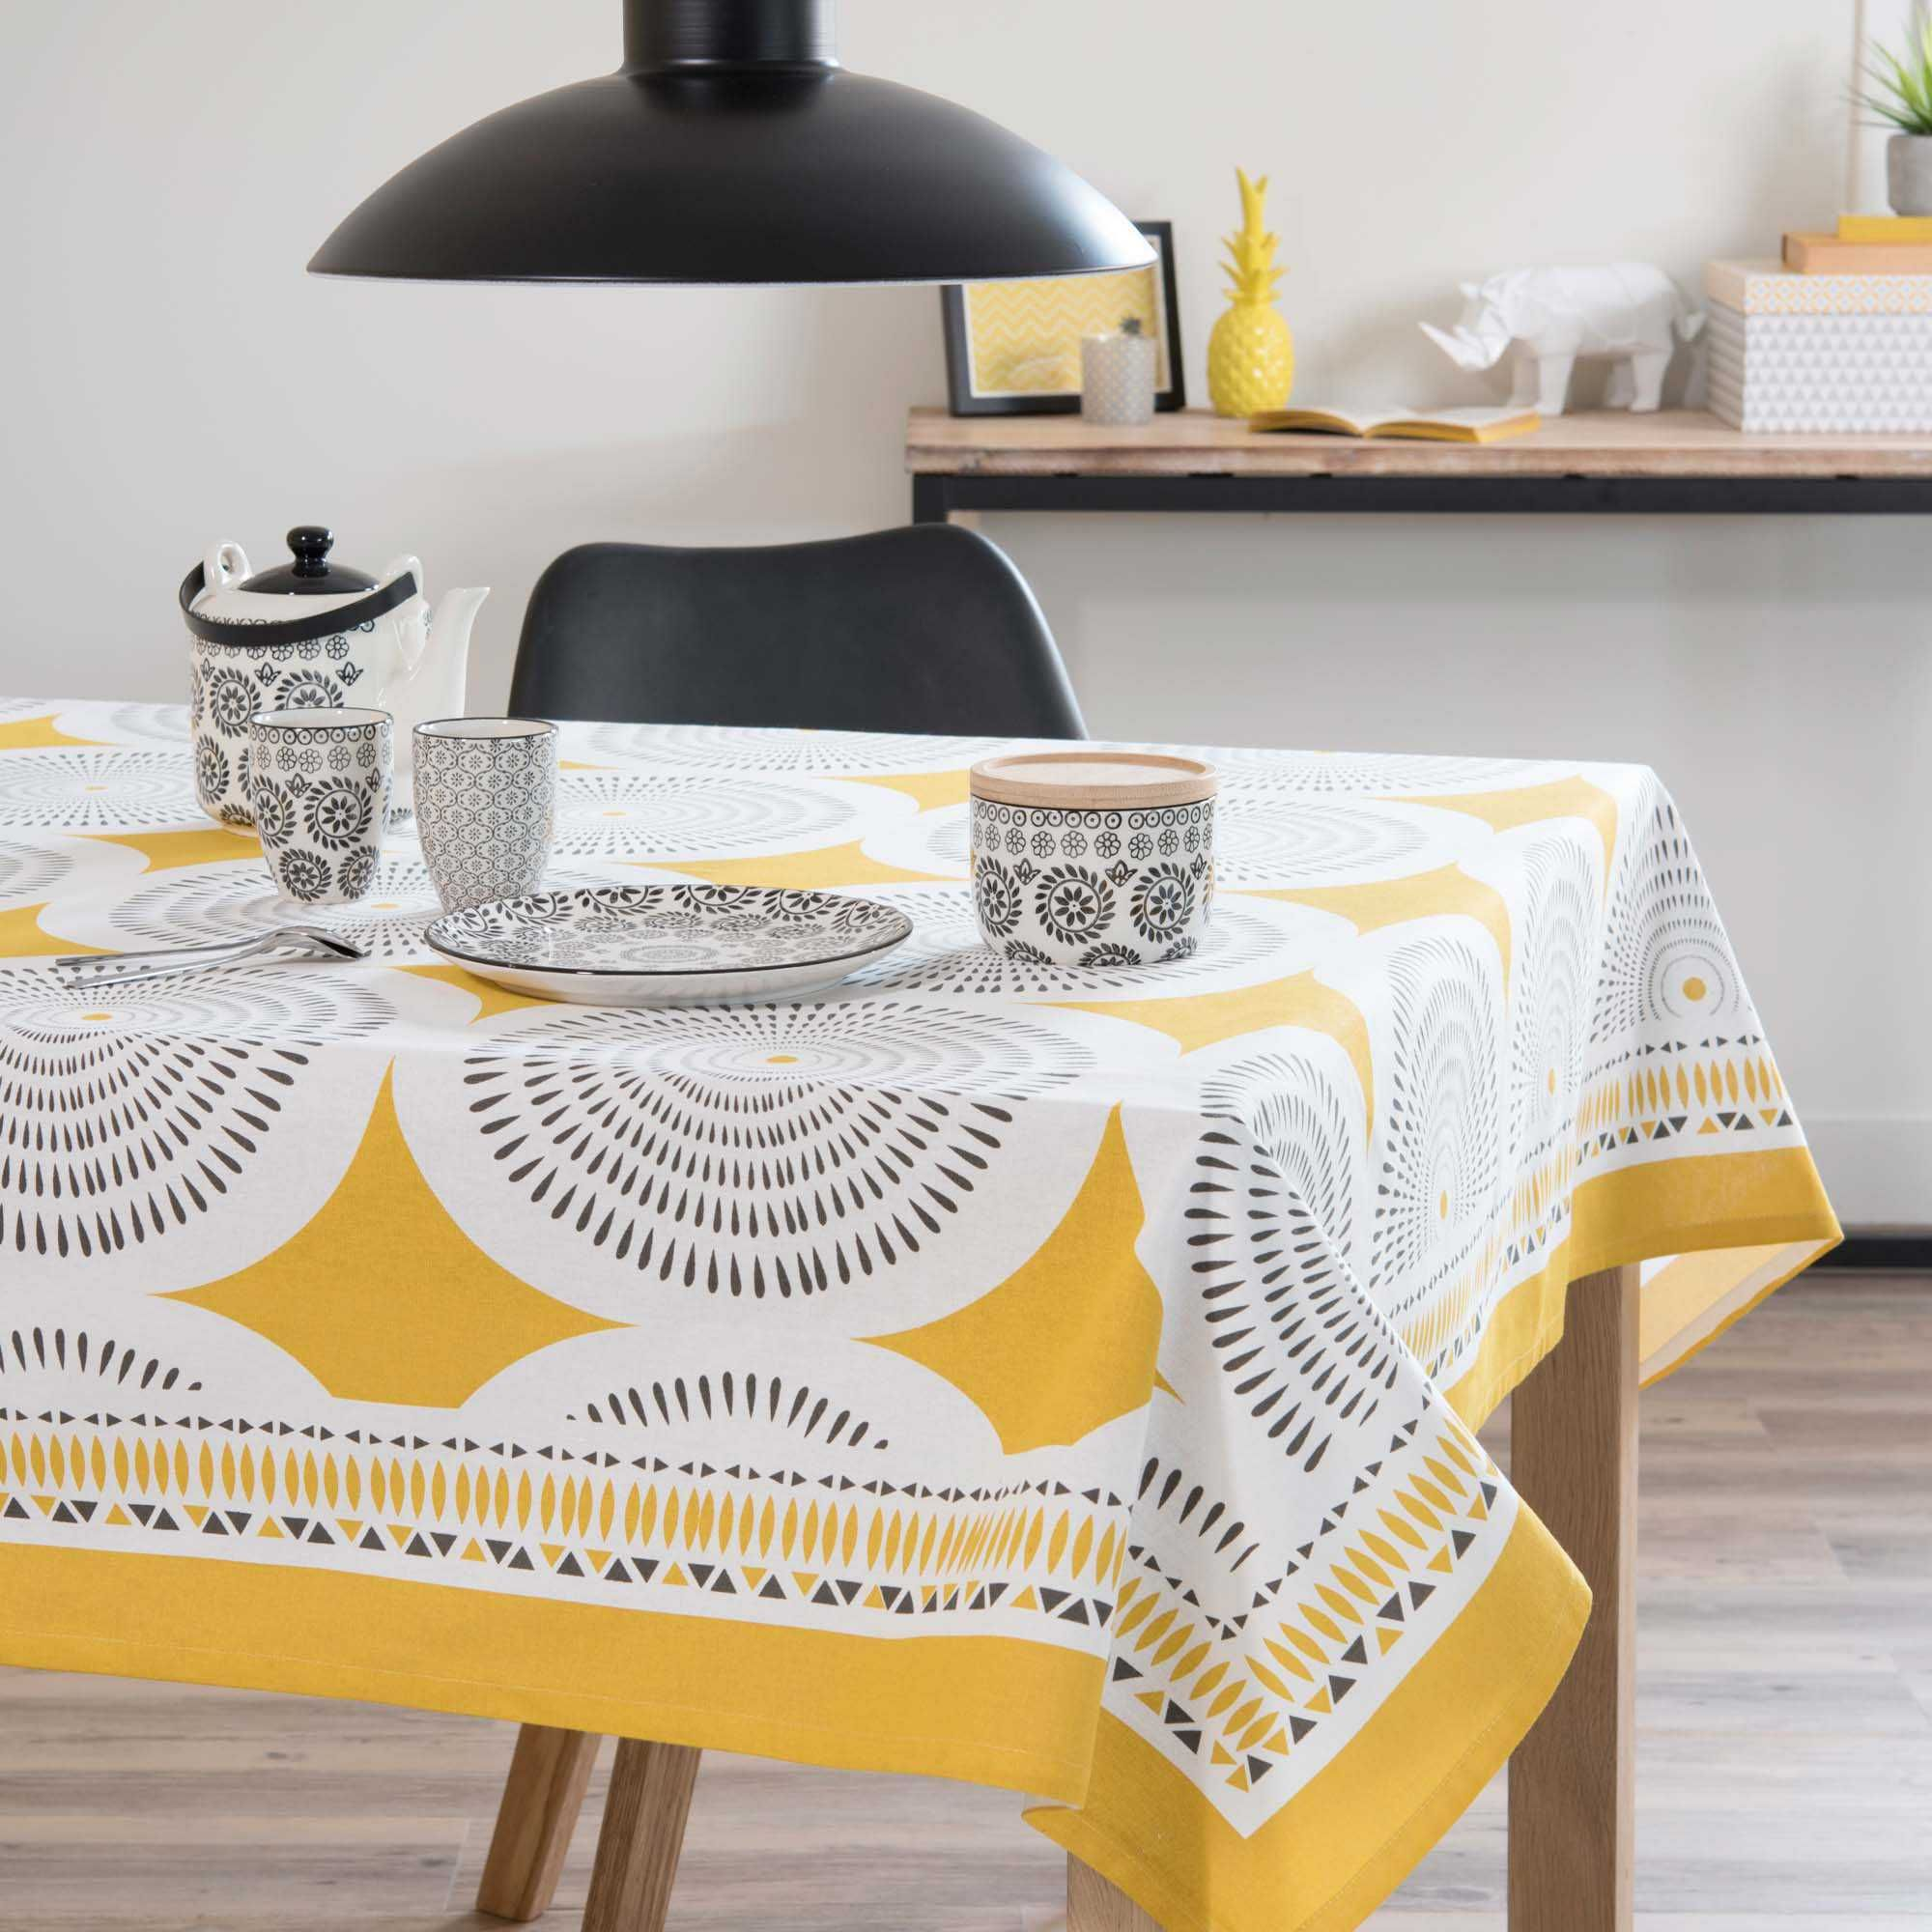 nappe en coton jaune gris 150 x 250 cm heliconia maisons. Black Bedroom Furniture Sets. Home Design Ideas